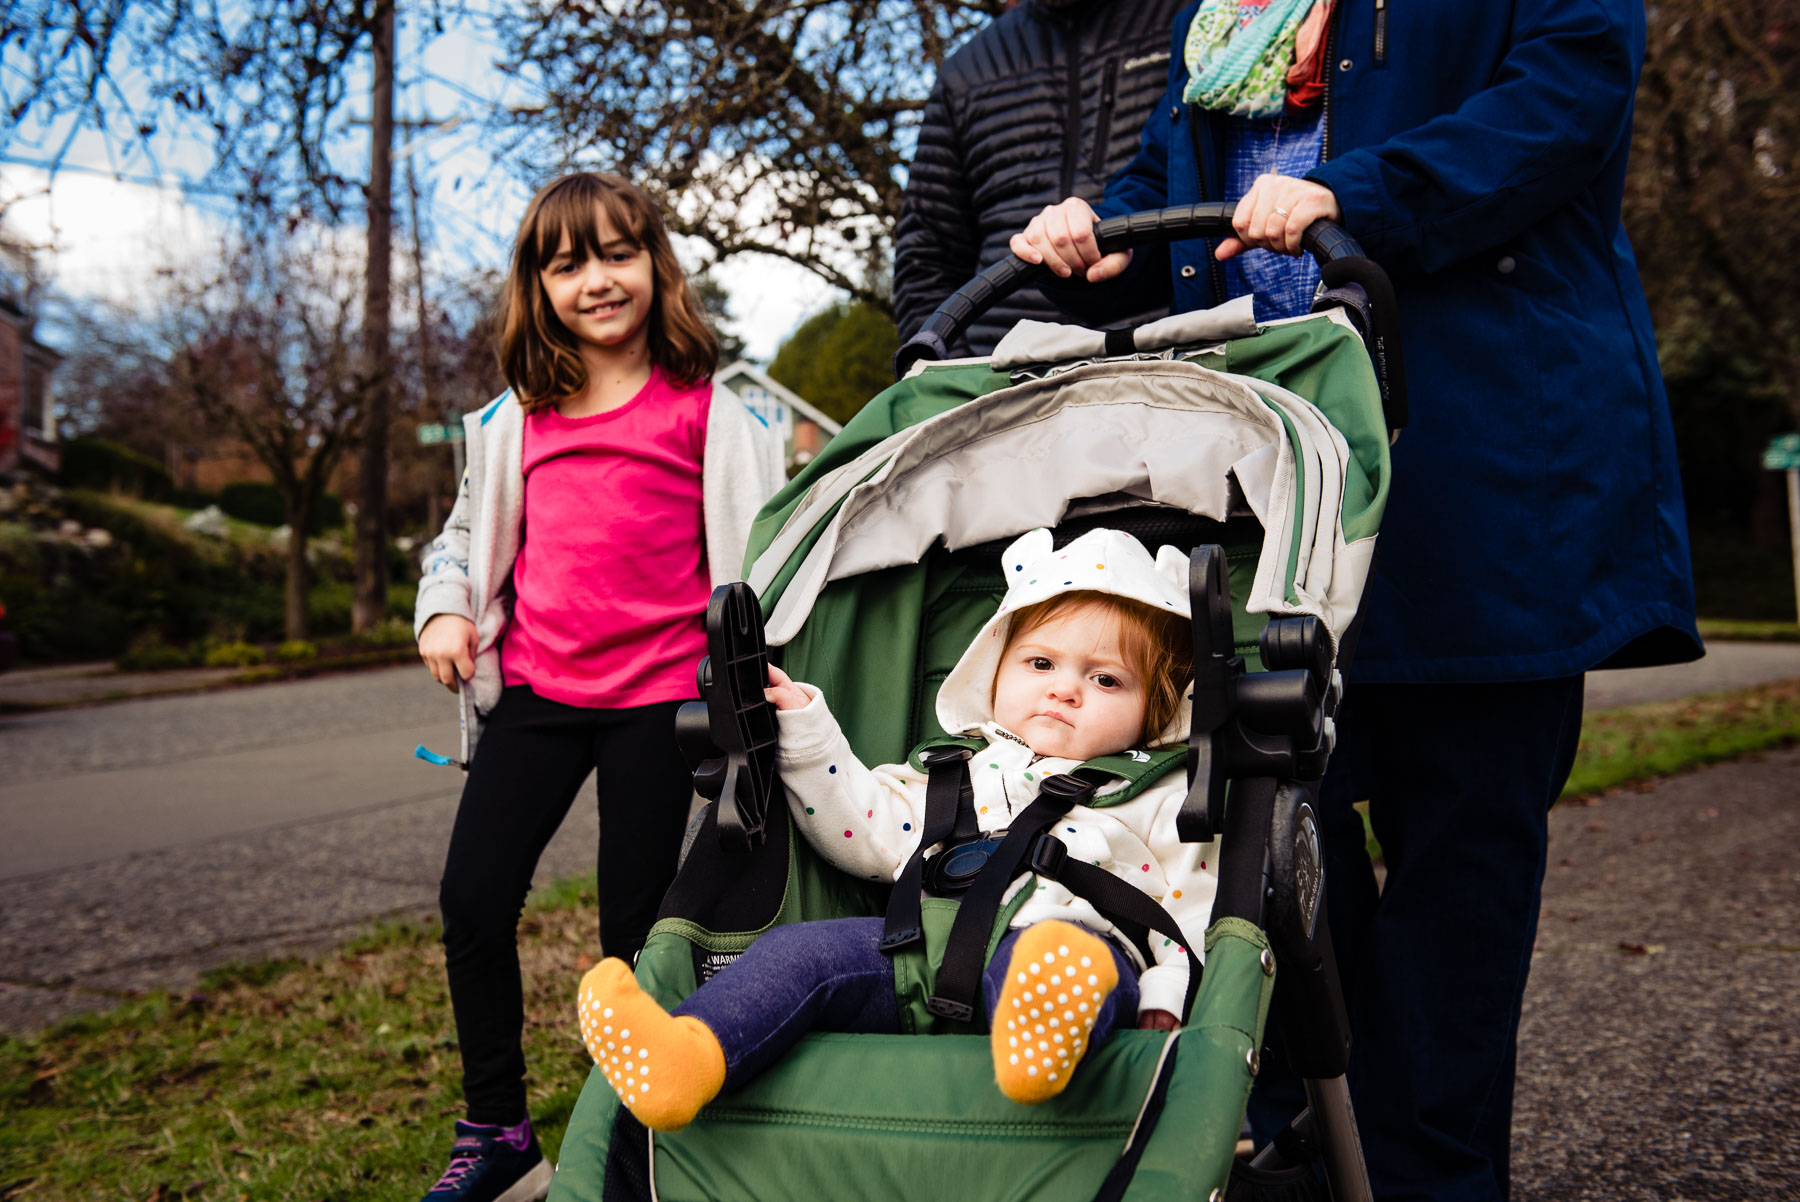 baby in stroller with sister walking